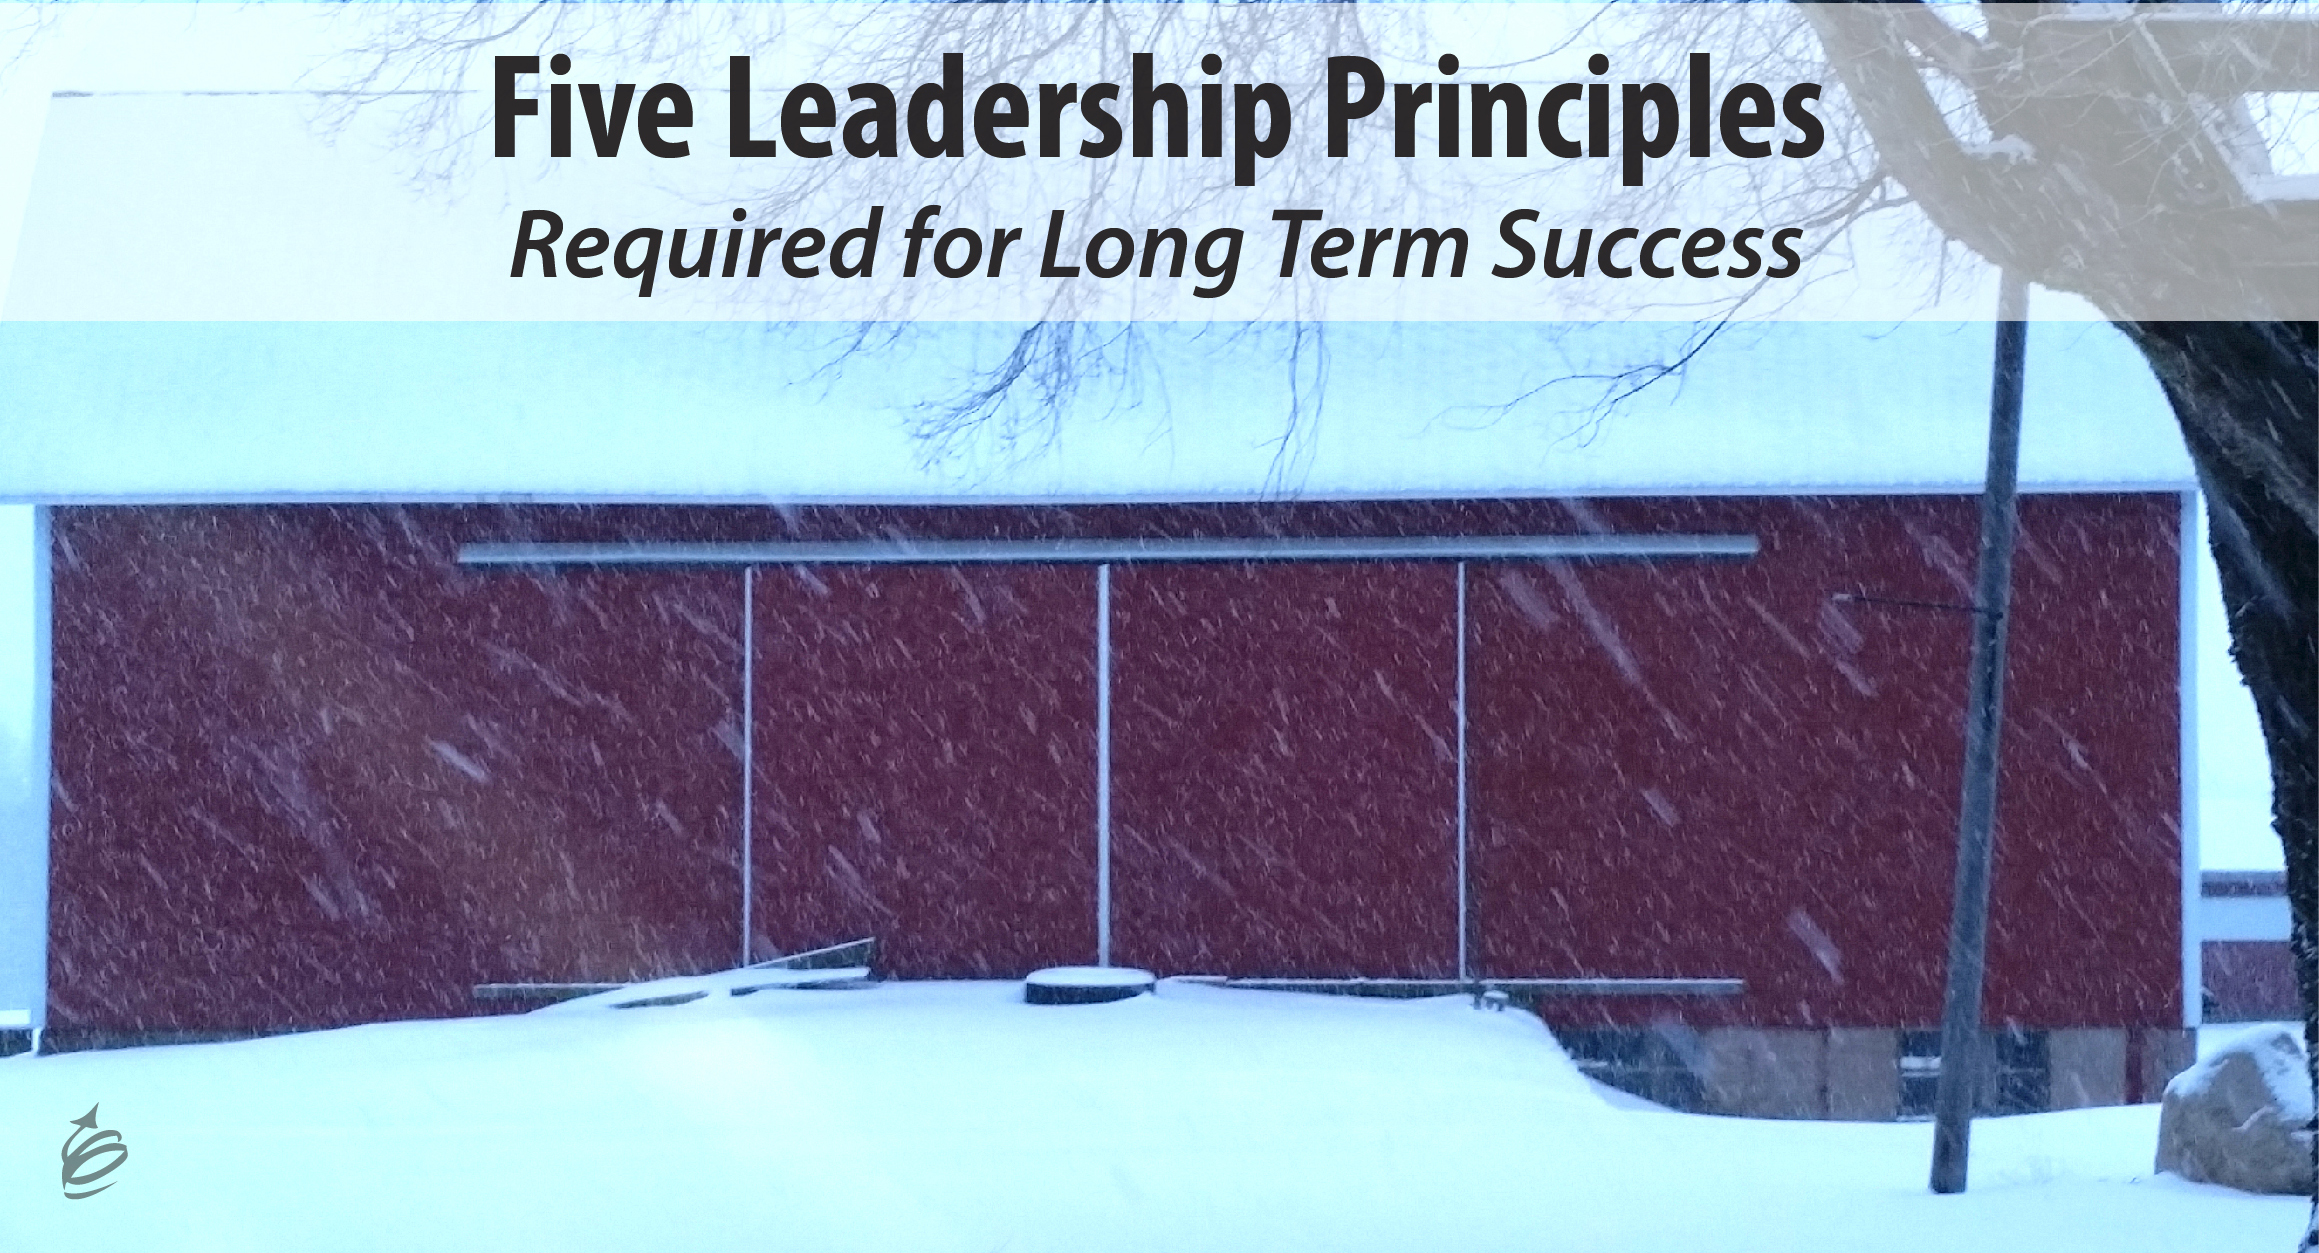 Snowy Barn | Built to Last: Five Leadership Principles Required for Long Term Success by Kevin Eikenberry